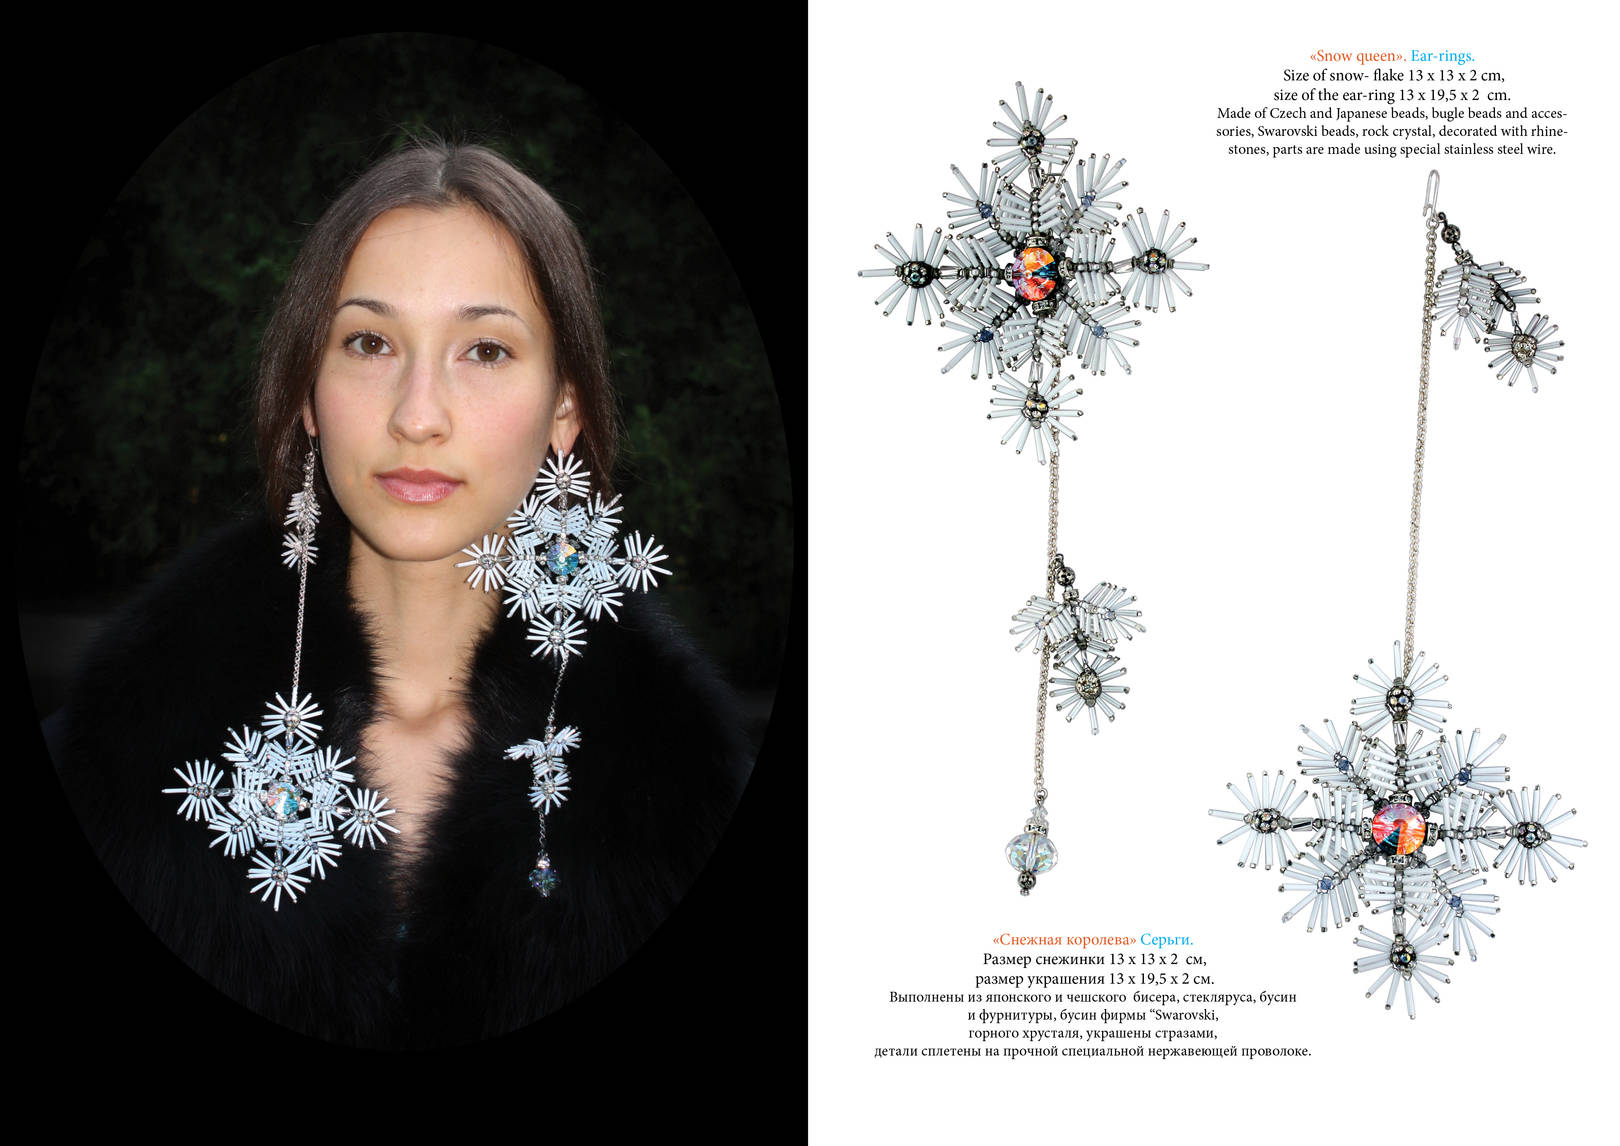 Snow queen  Earrings. Length - 195 mm, diameter - 130 mm.  Czech and Japanese beads, bugle beads and accessories, Swarovski beads, rock crystal, decorated with rhinestones.